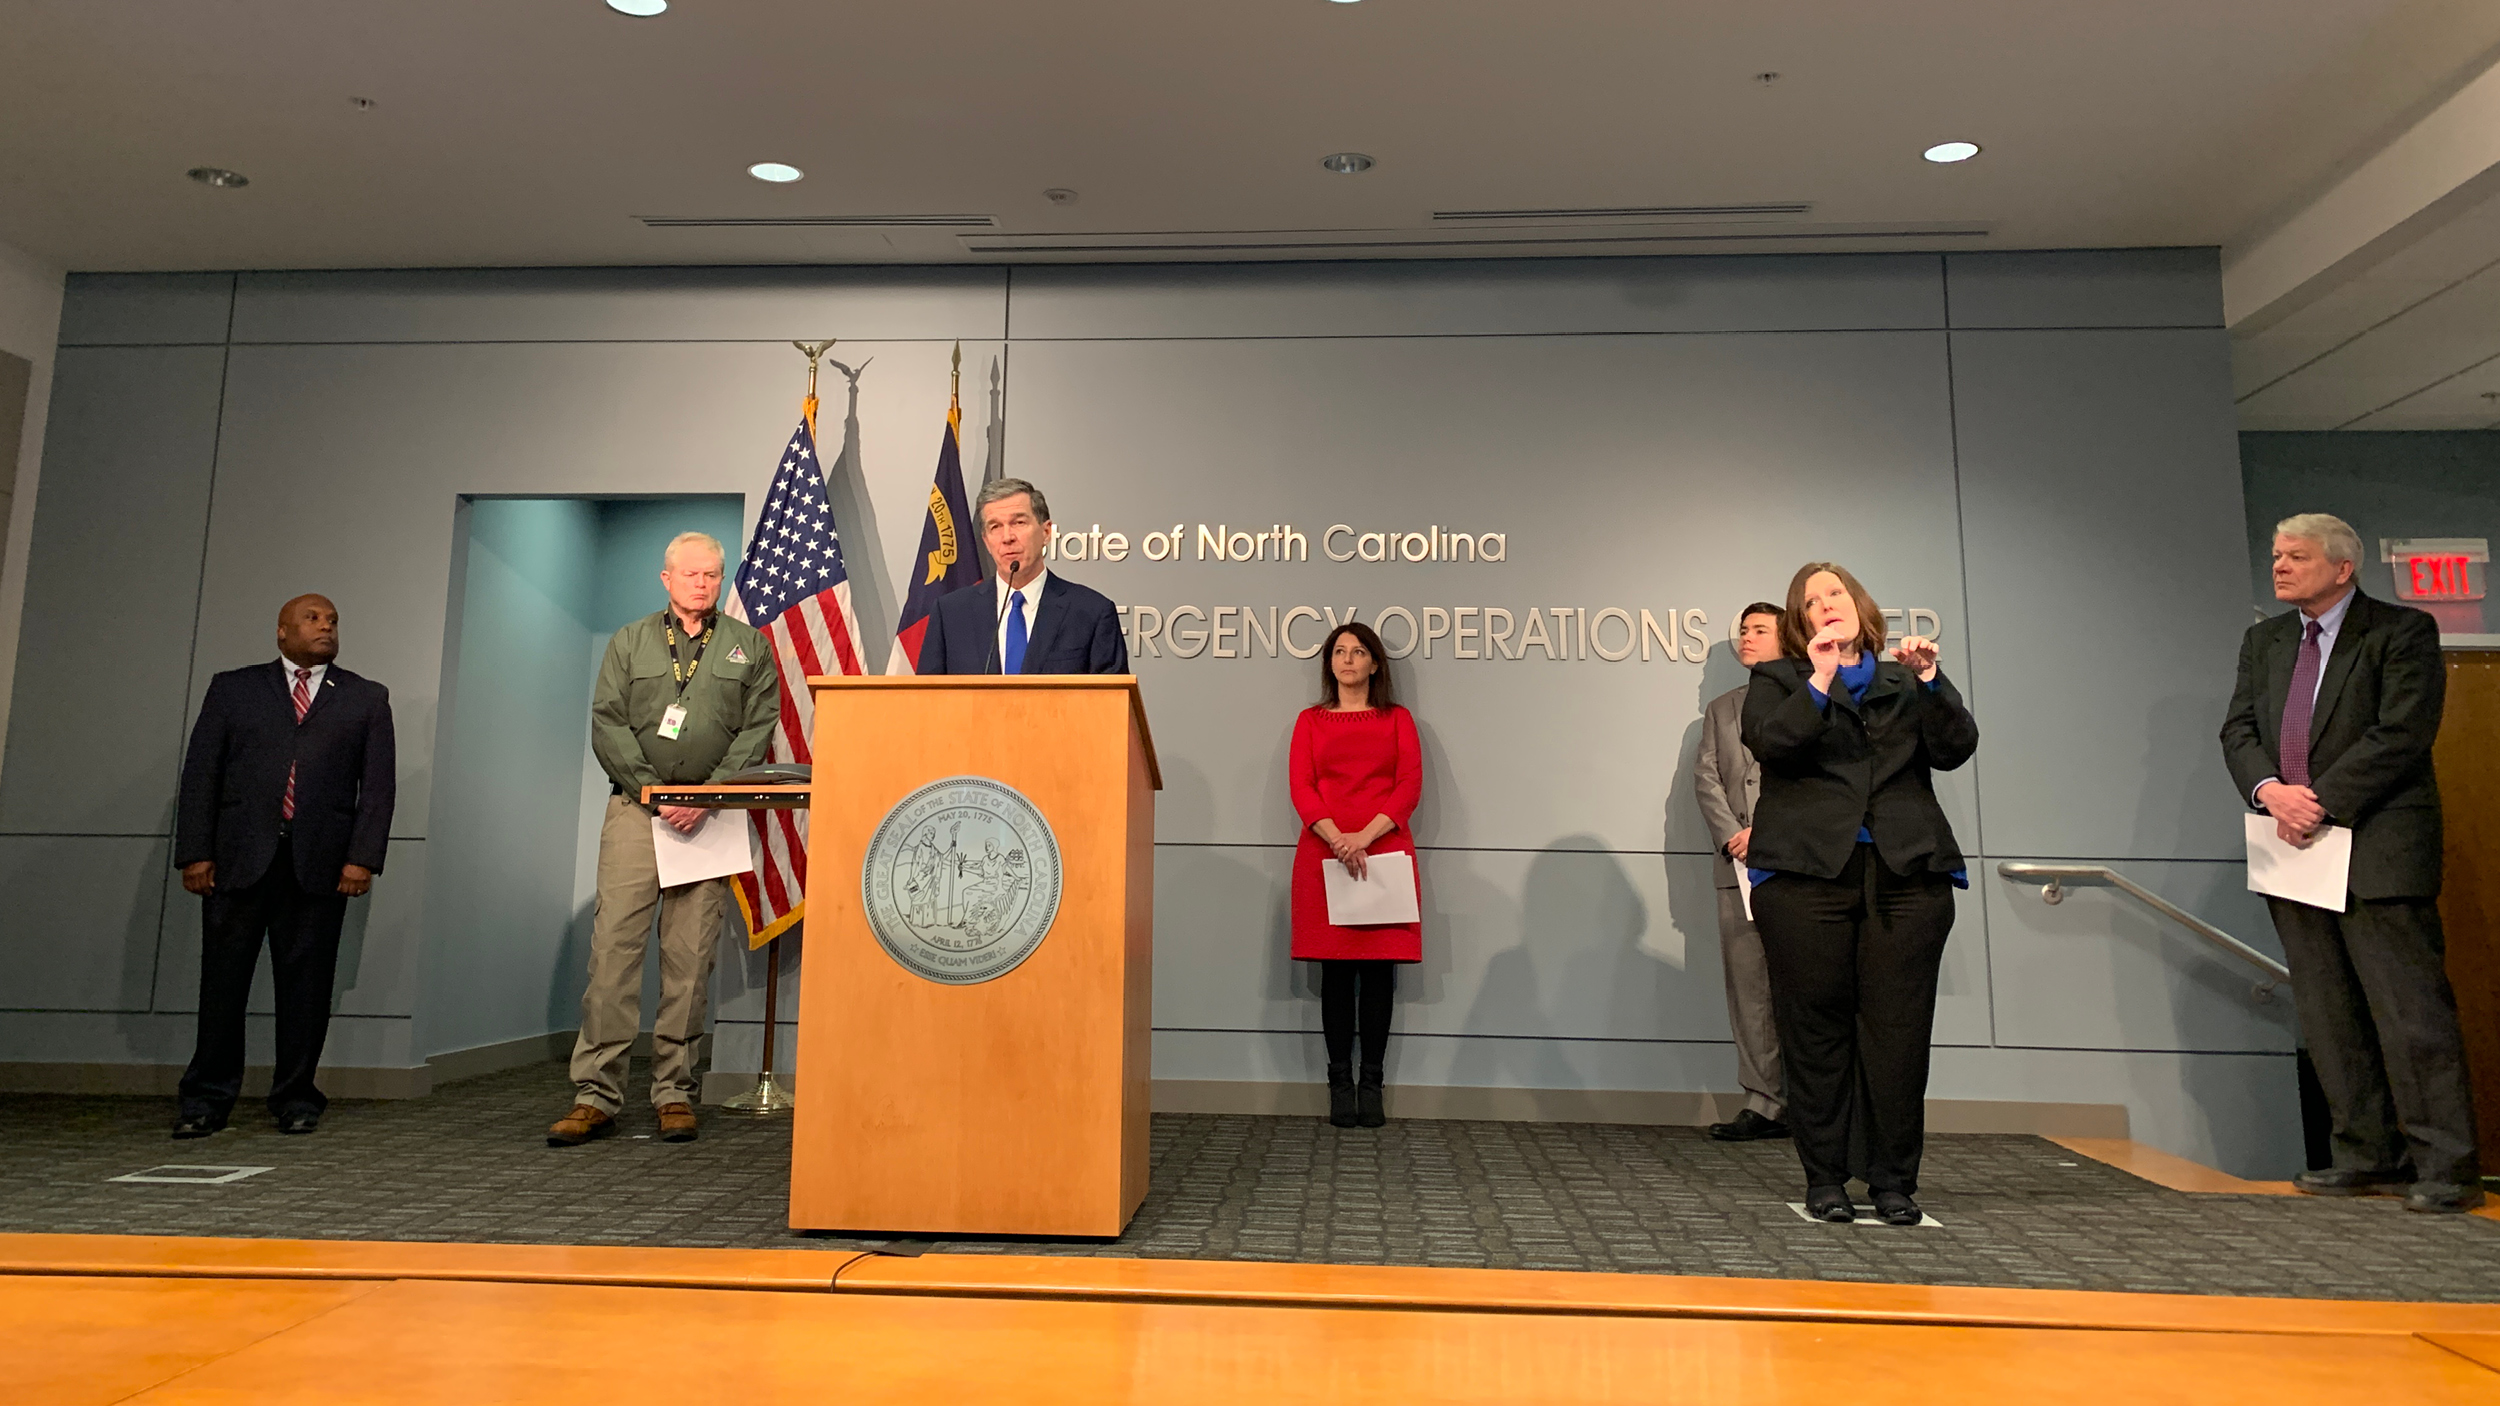 N.C. Governor Roy Cooper introduces Secretary of Health and Human Services Mandy Cohen at a COVID-19 press conference.